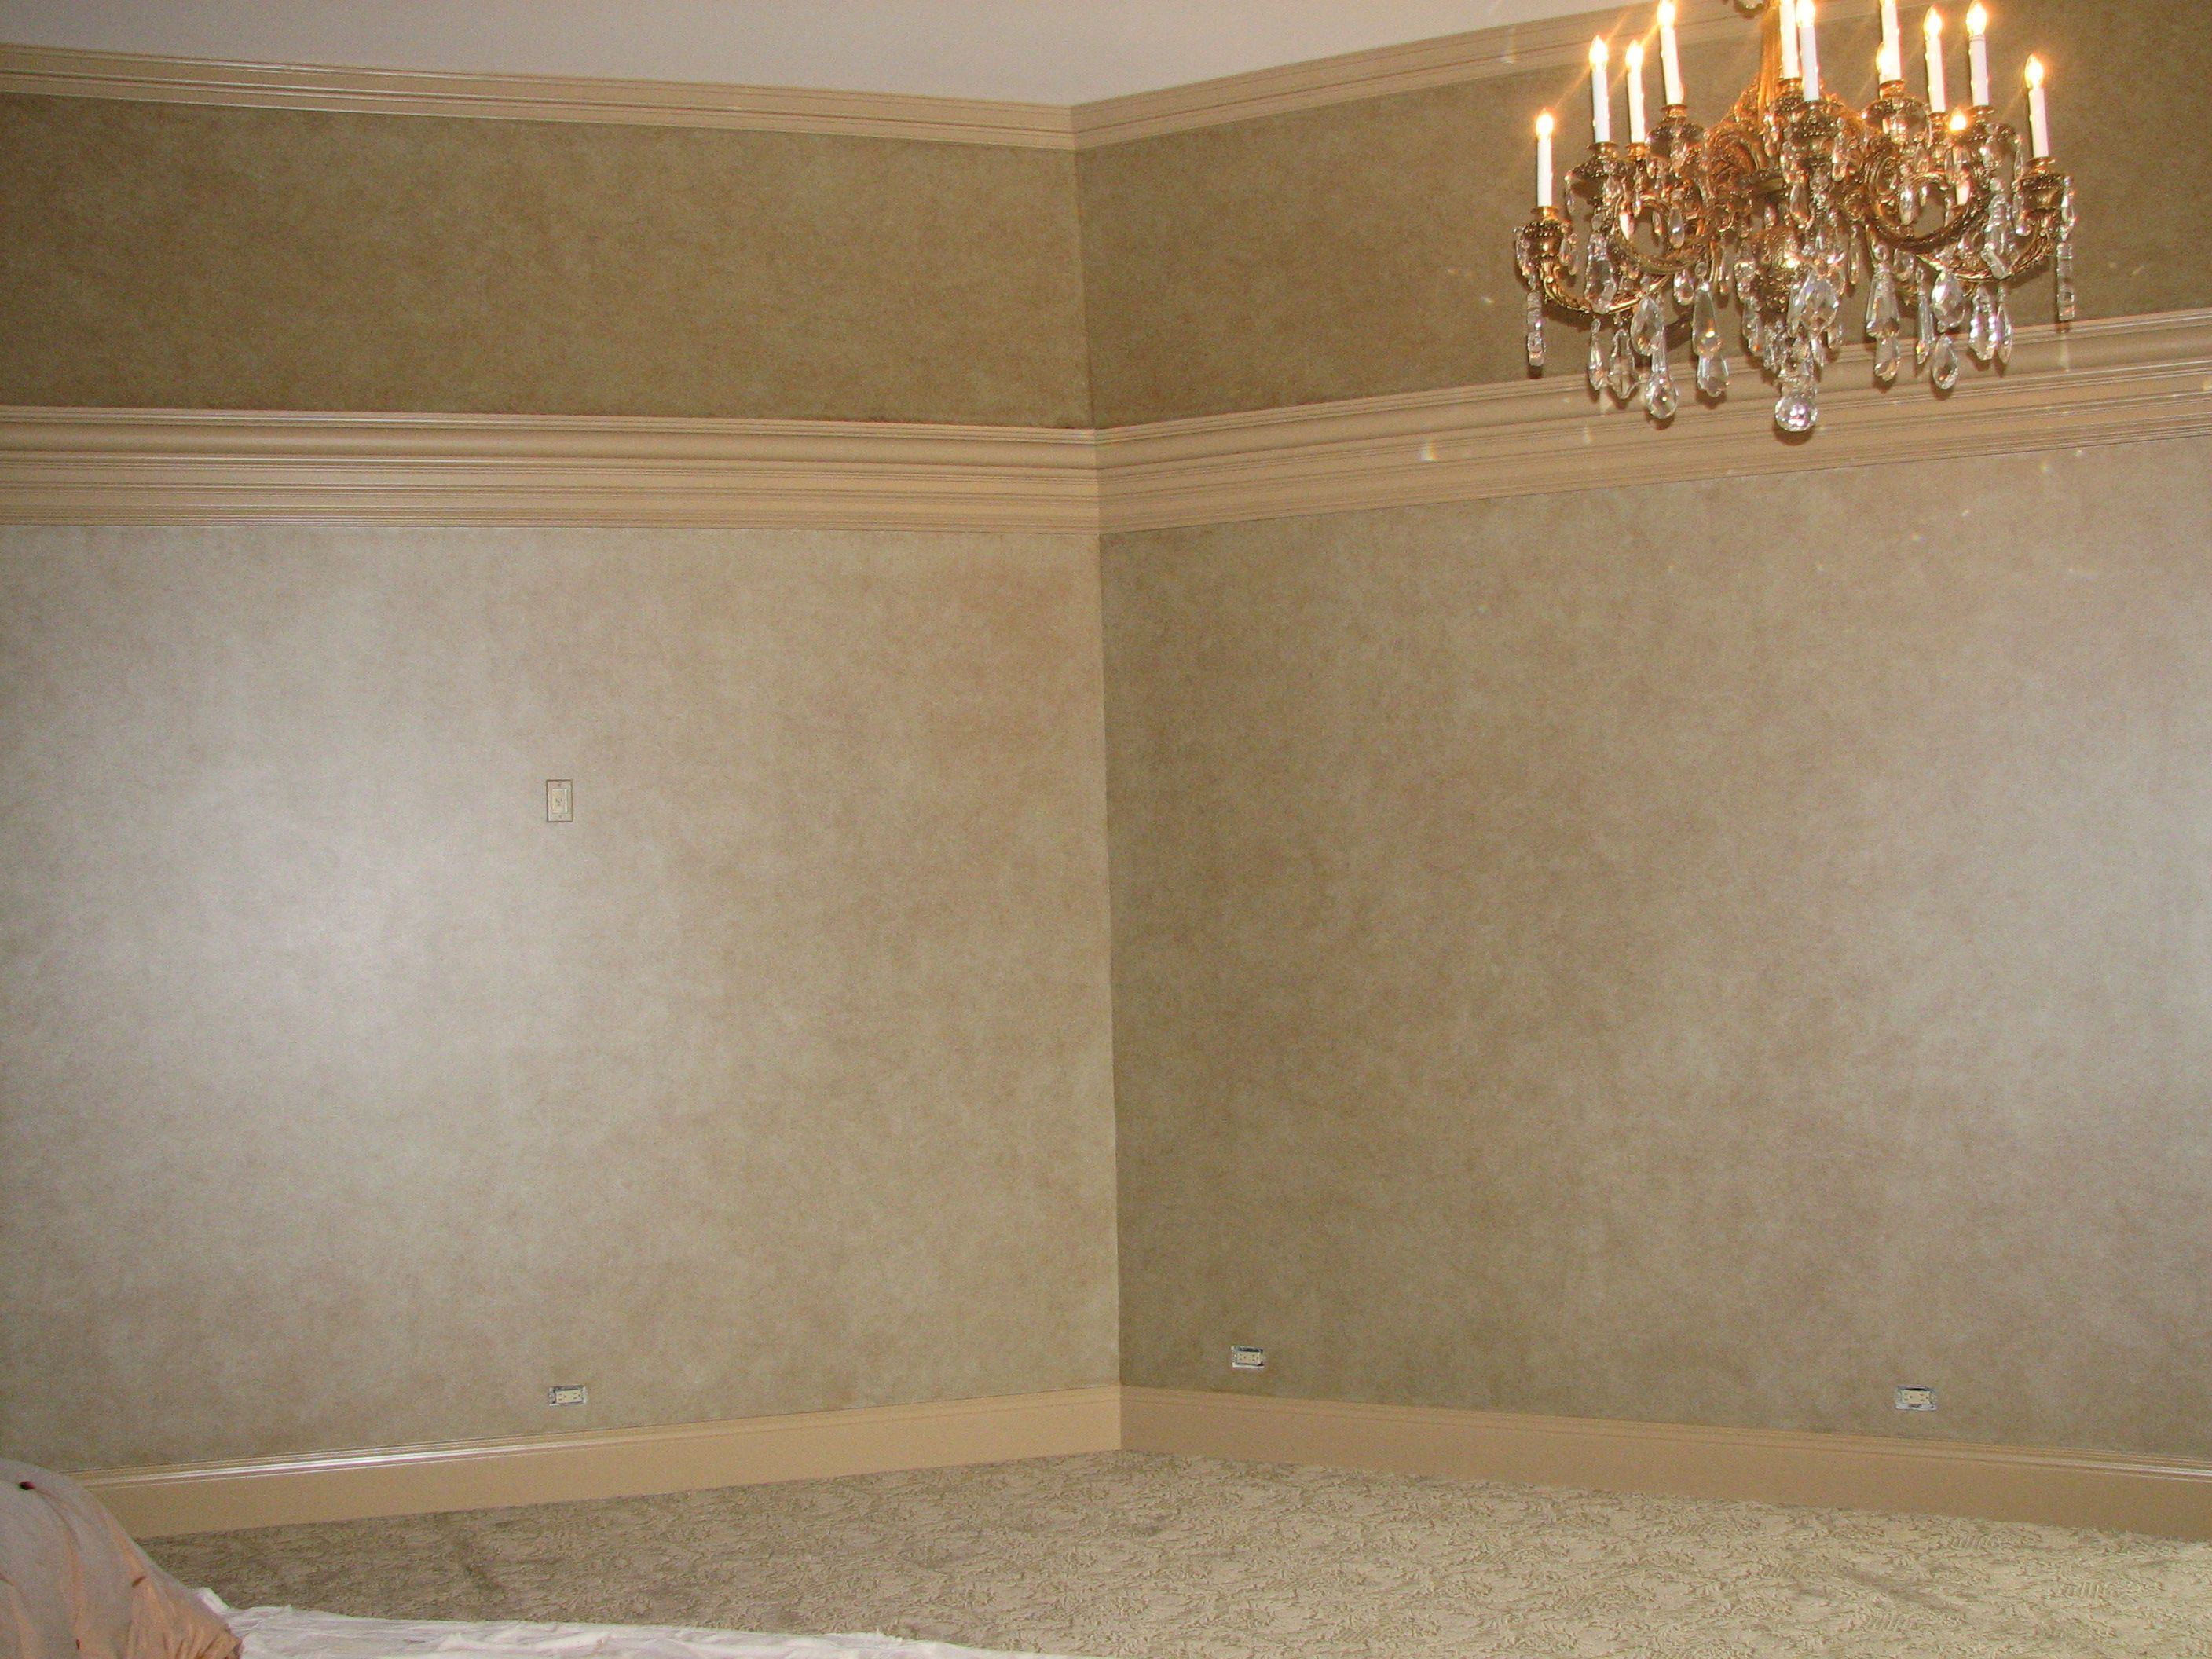 Painted walls with 4 step/color mottled glaze finish